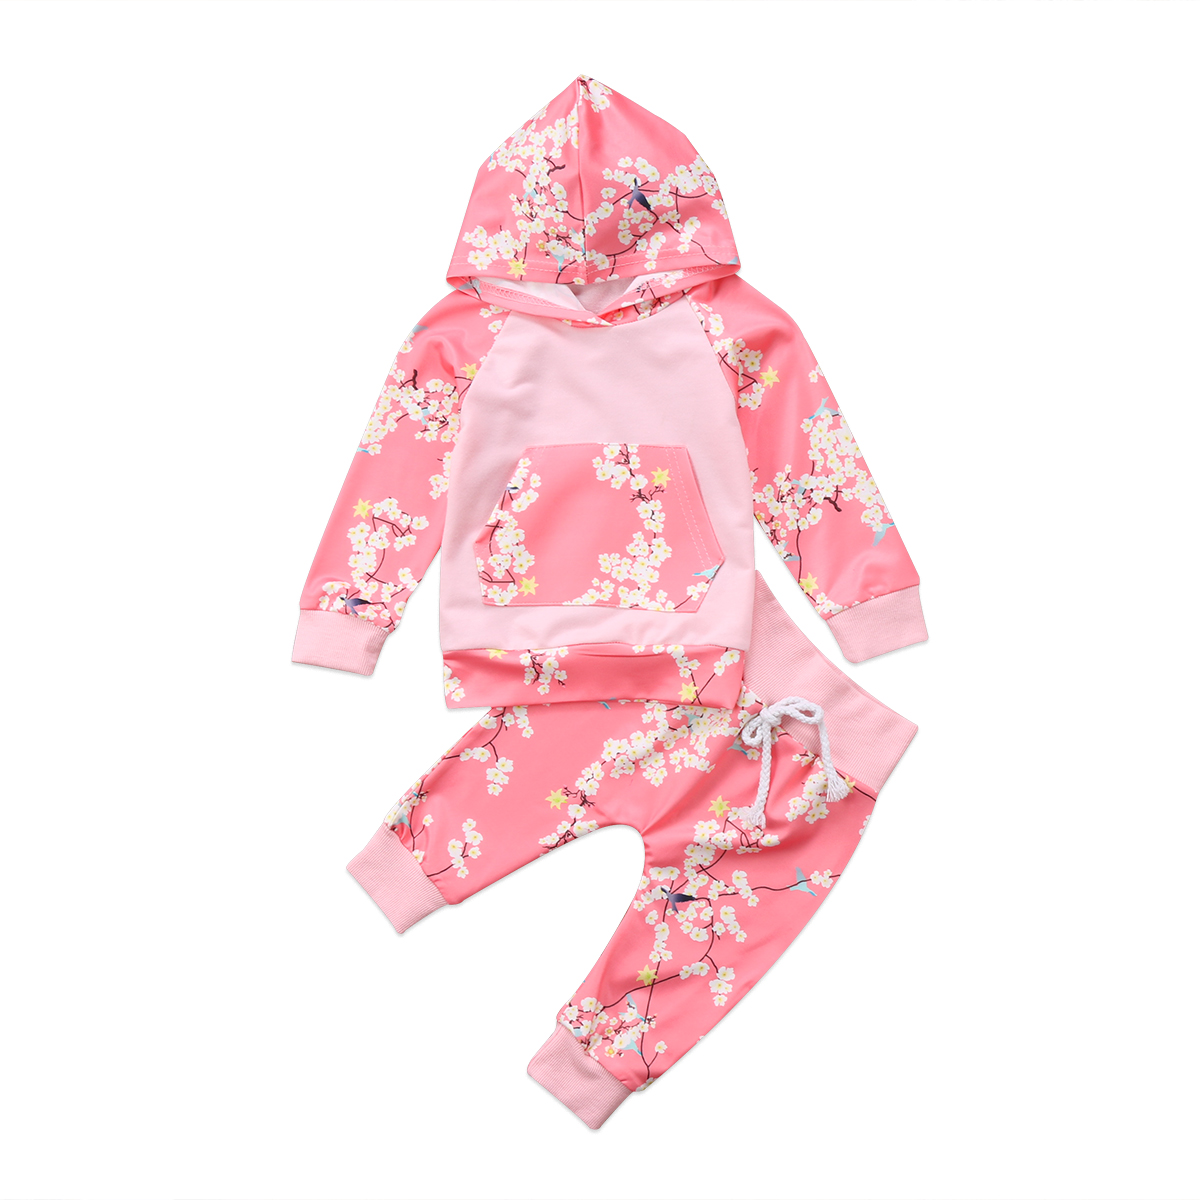 Lovely Spring Baby Girls Clothes set Toddler Newborn BabyFloral Hooded T-Shirt Pants Cotton Outfits baby girl floral clothes